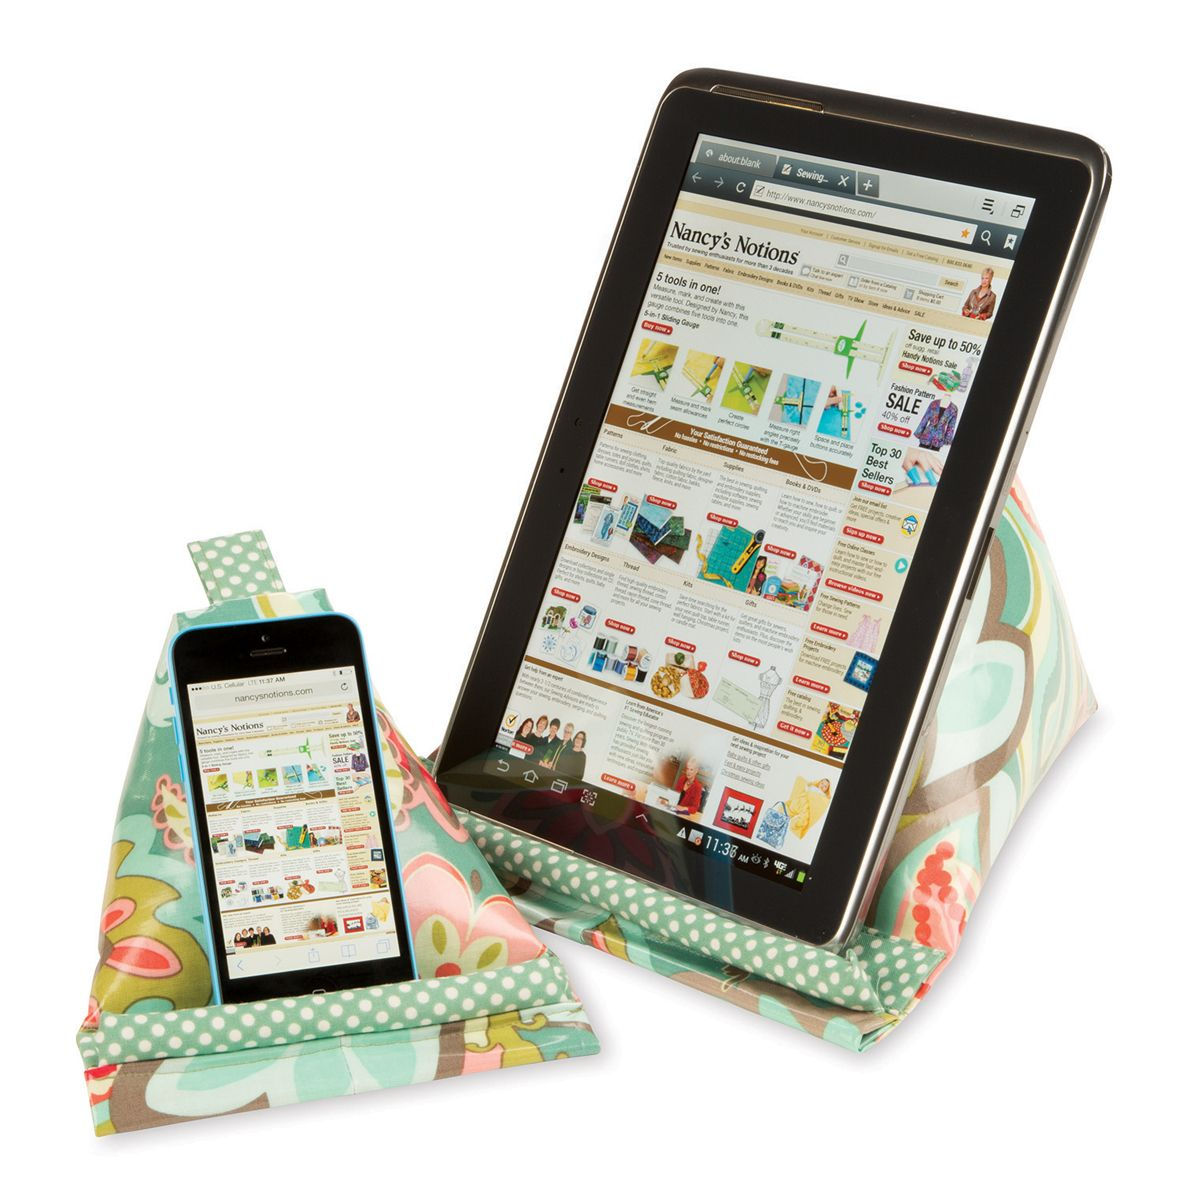 Free Sewing Pattern For Ipad Pillow: Sew an Easy iPad Pillow or Tablet Stand   Nancy zieman  iPad and    ,